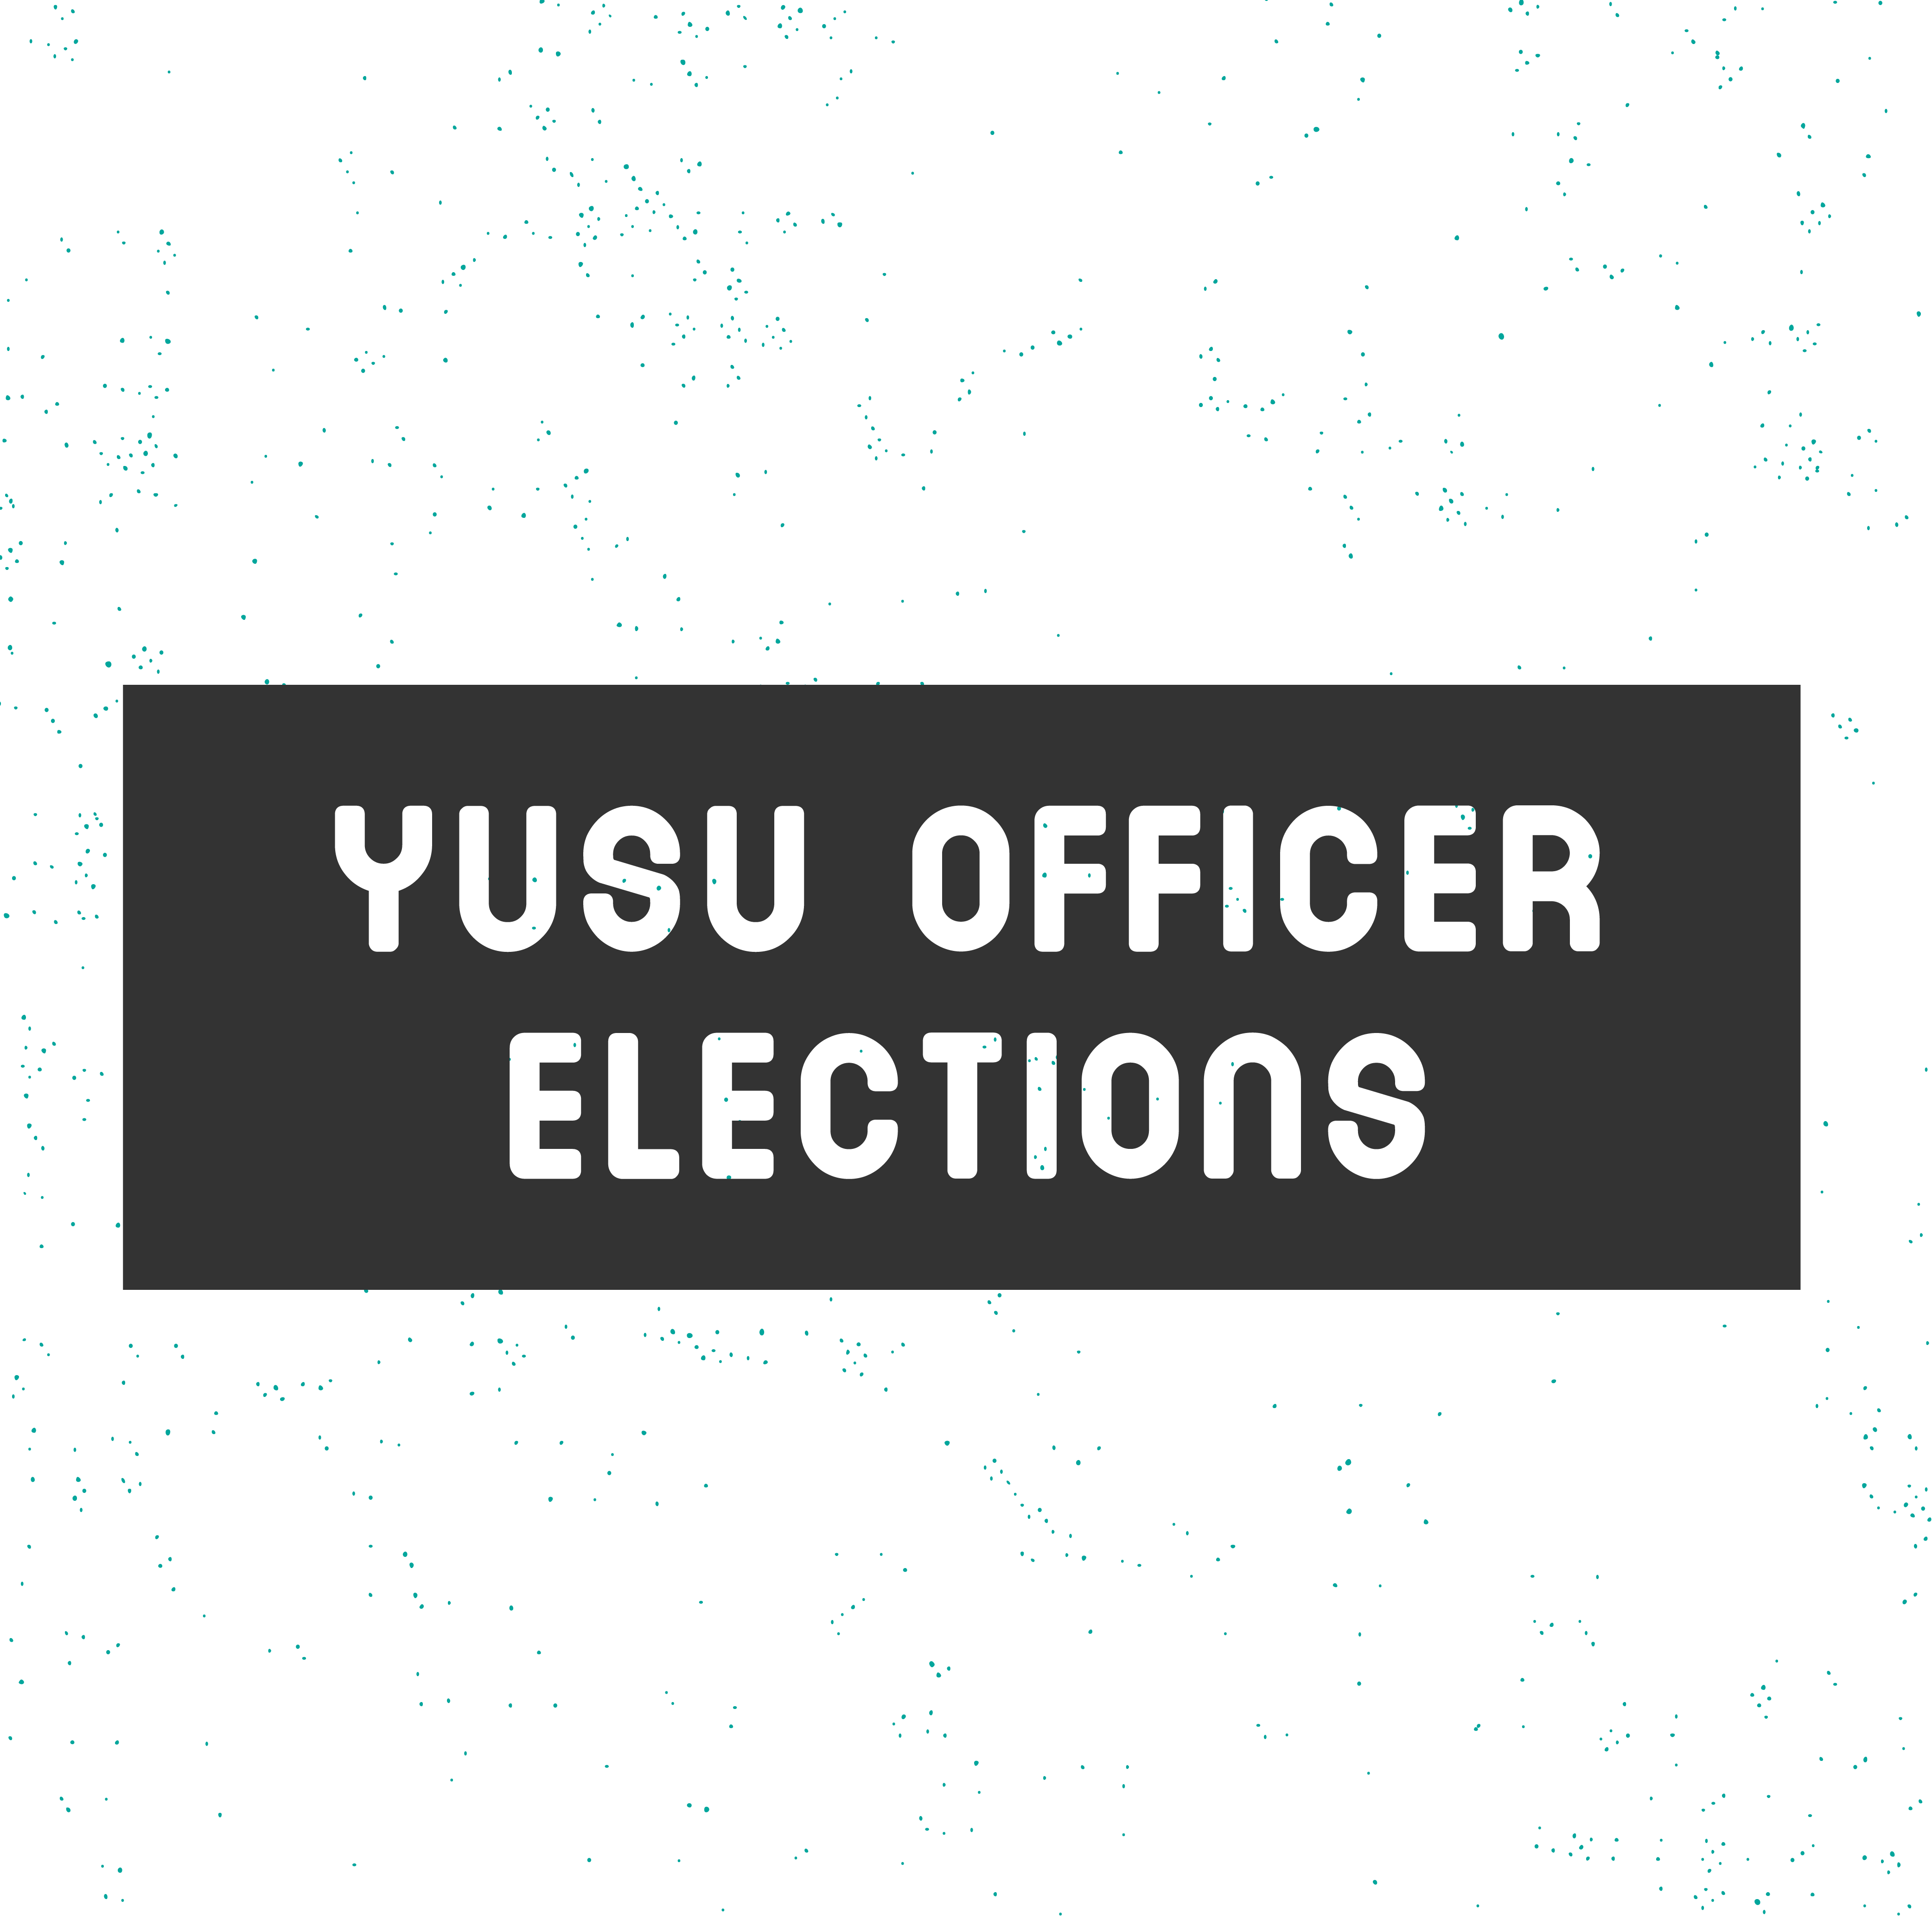 YUSU Officer Elections 2018